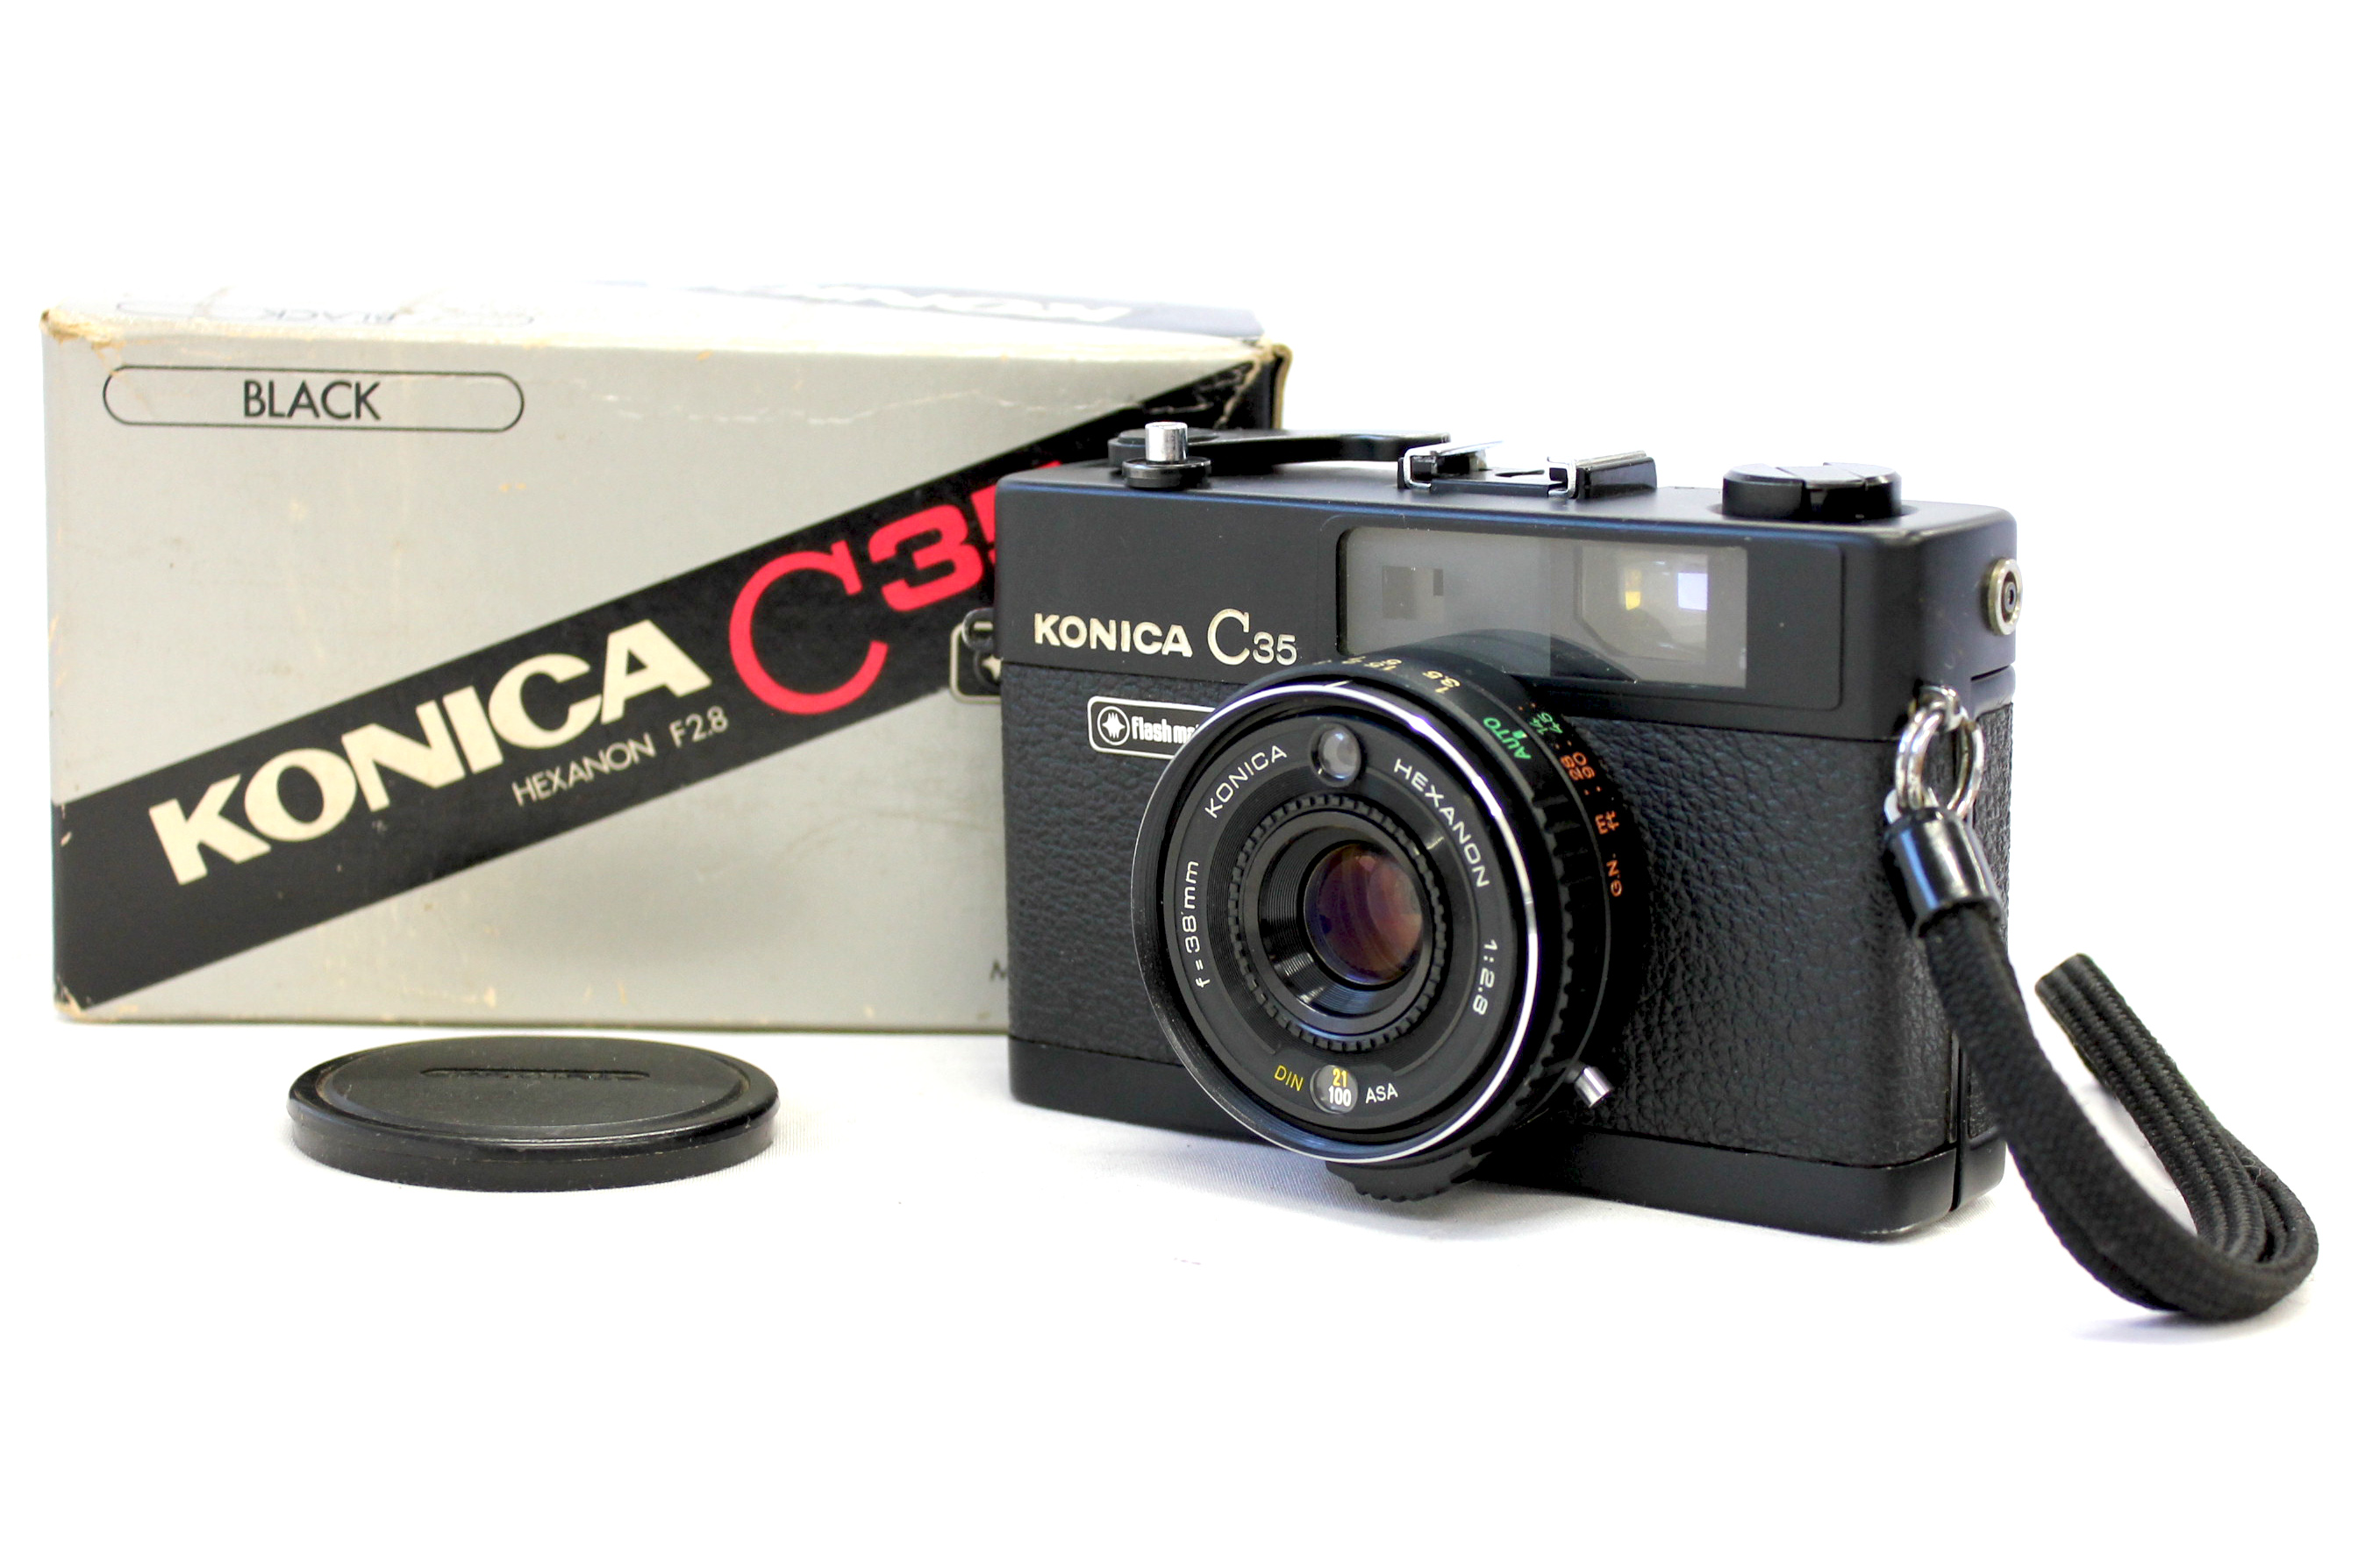 Japan Used Camera Shop | [Excellent++++ in Box] Konica C35 Flash Matic Black 35mm Rangefinder Film Camera from Japan